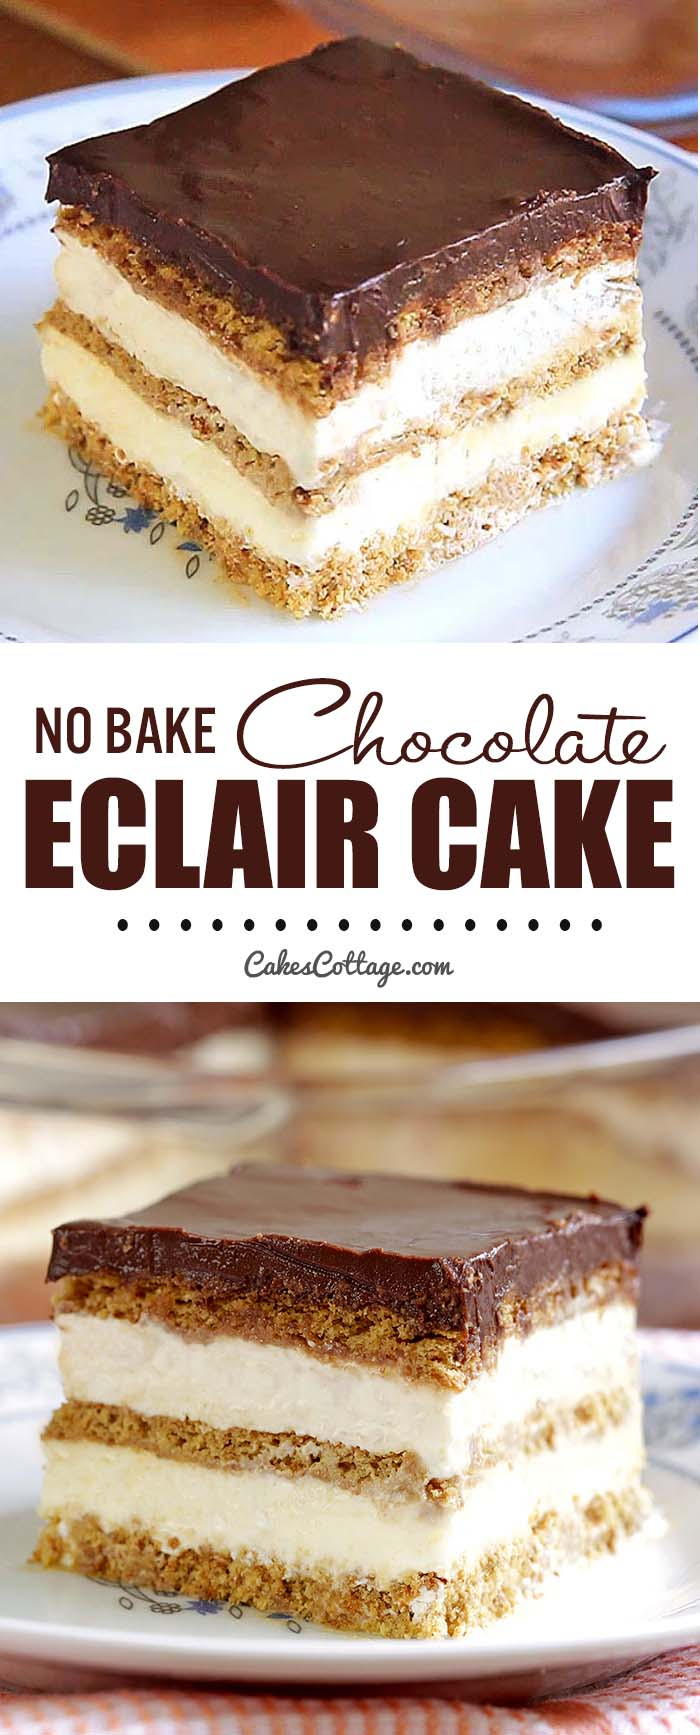 No Bake Chocolate Eclair Icebox Cake Cakescottage